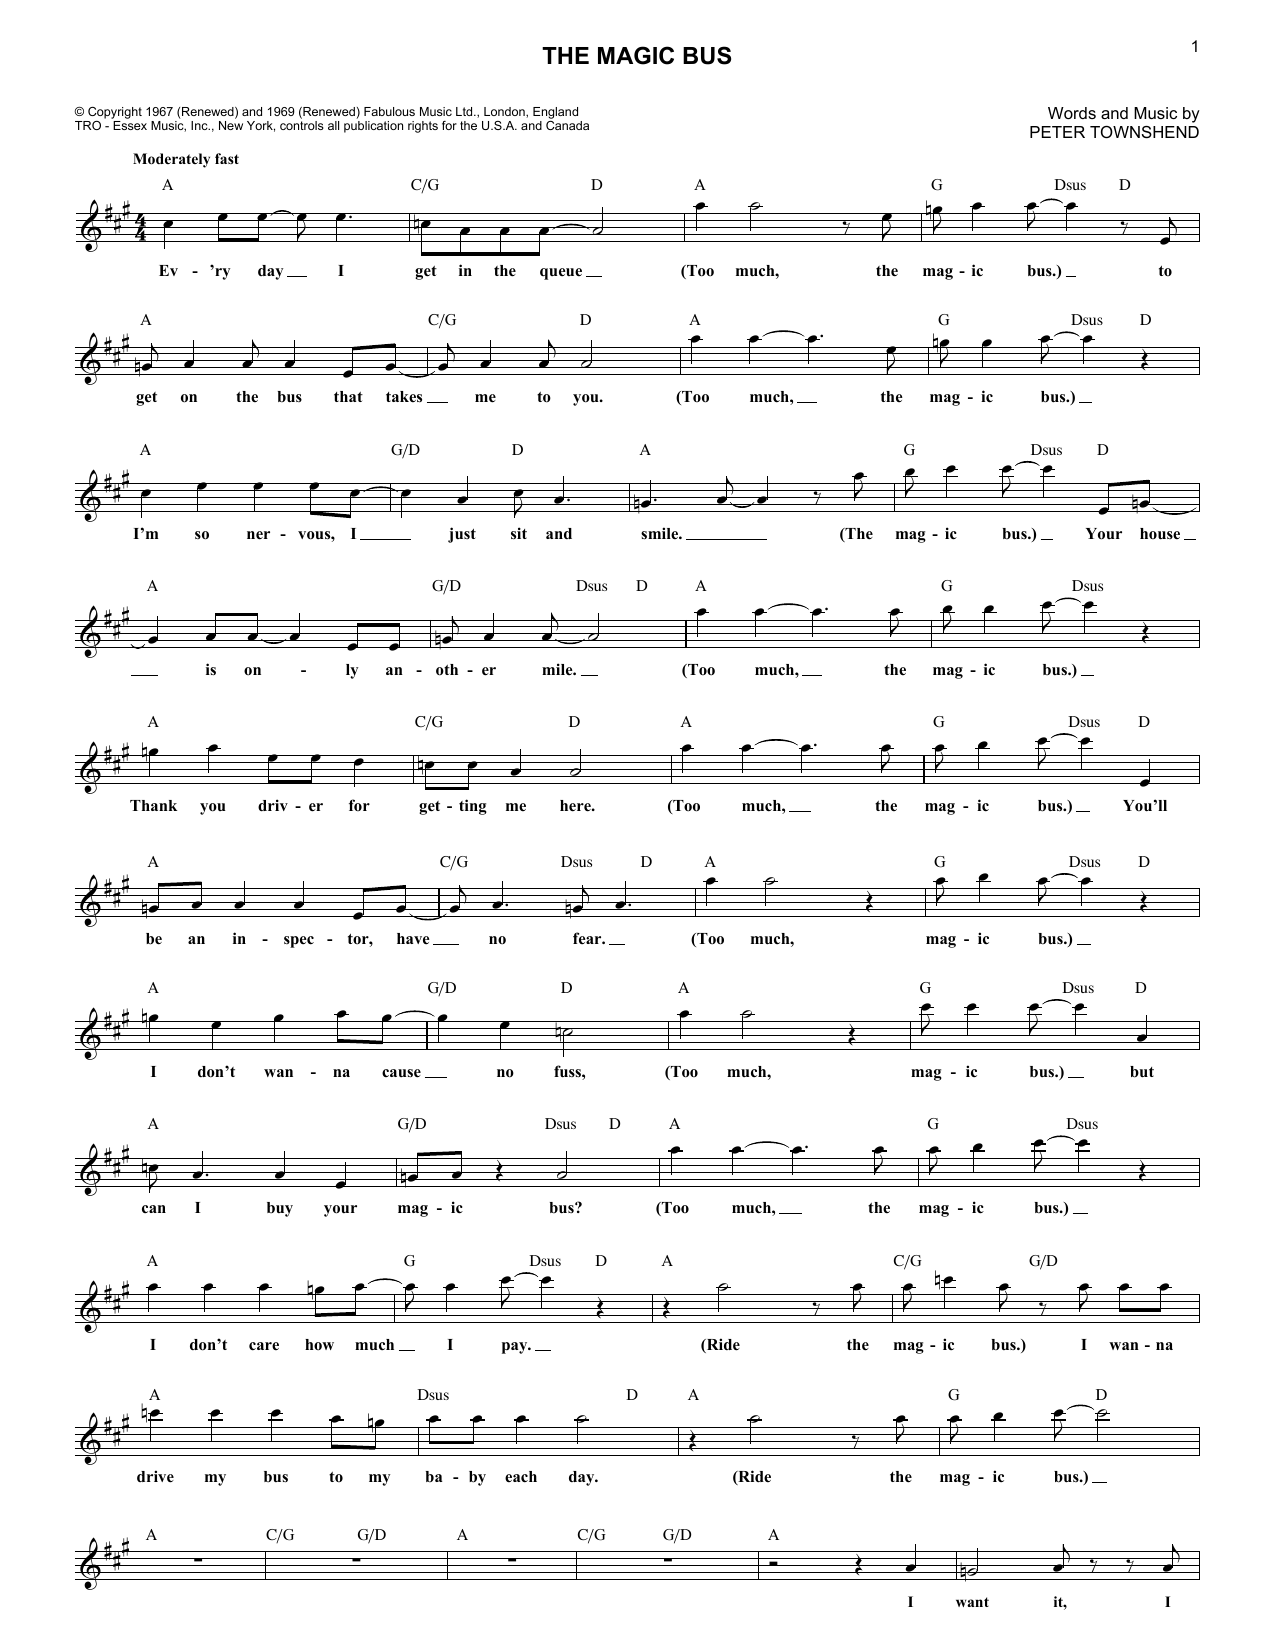 The Magic Bus Sheet Music